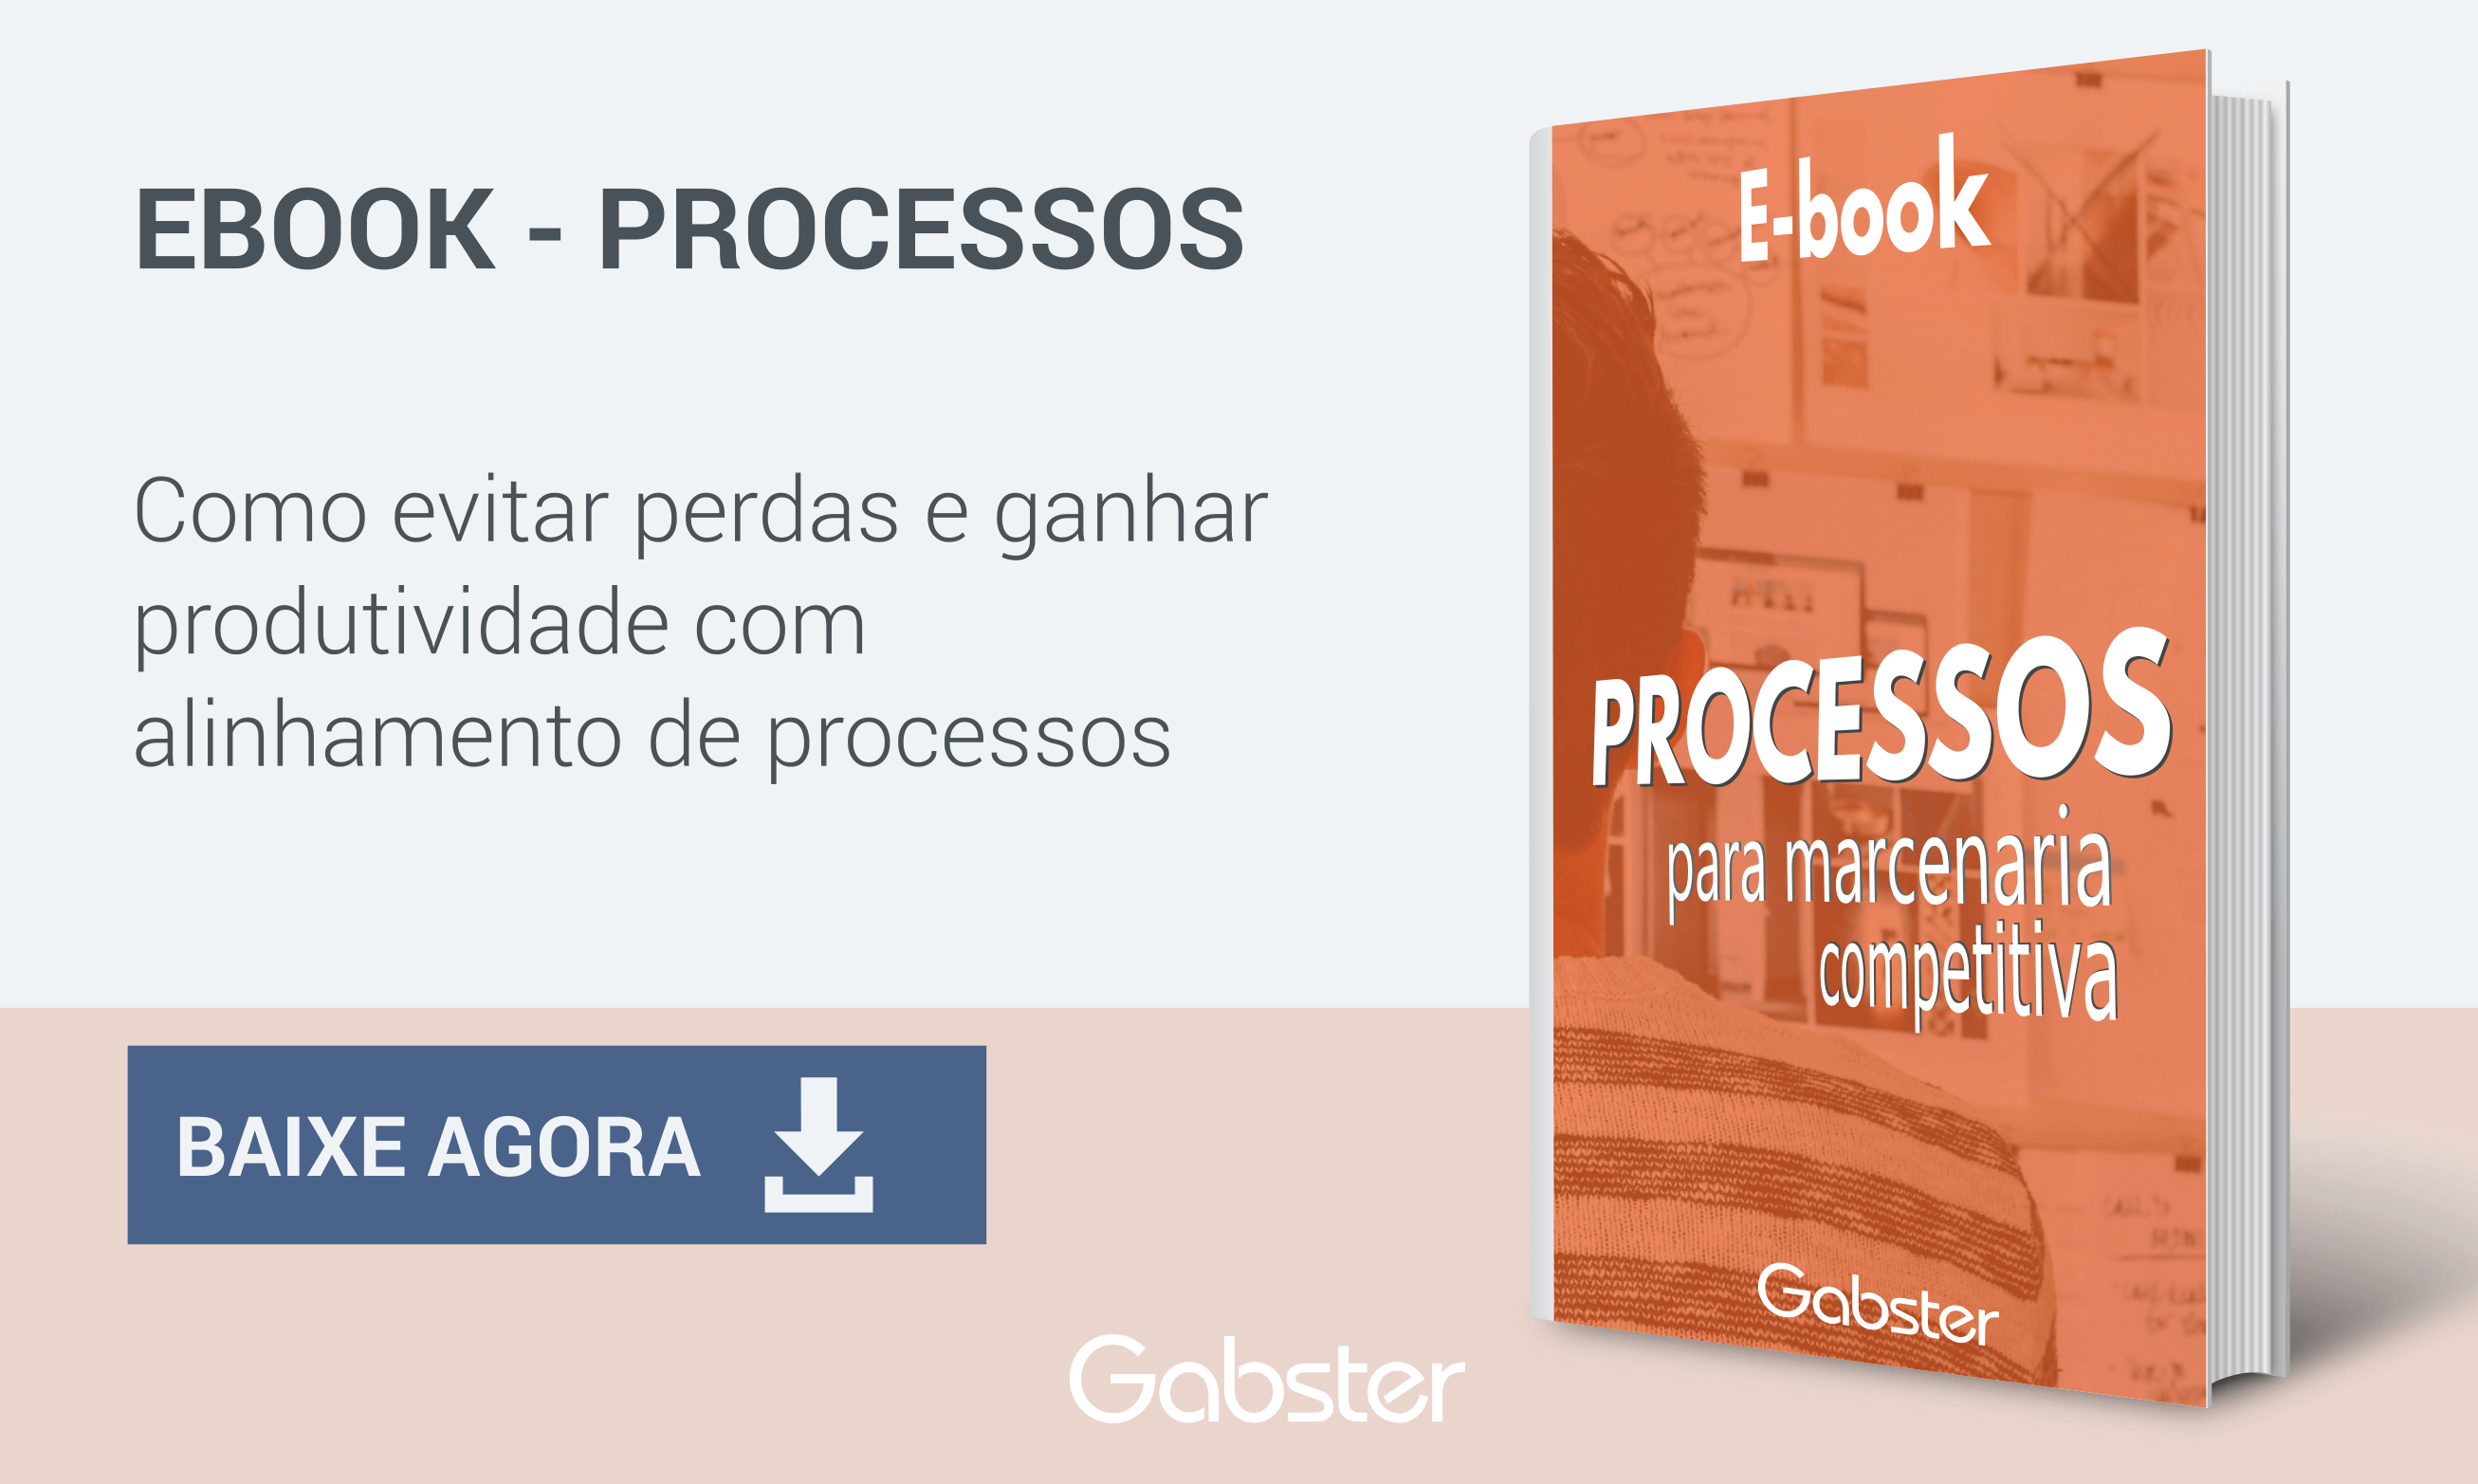 Ebook: Processos